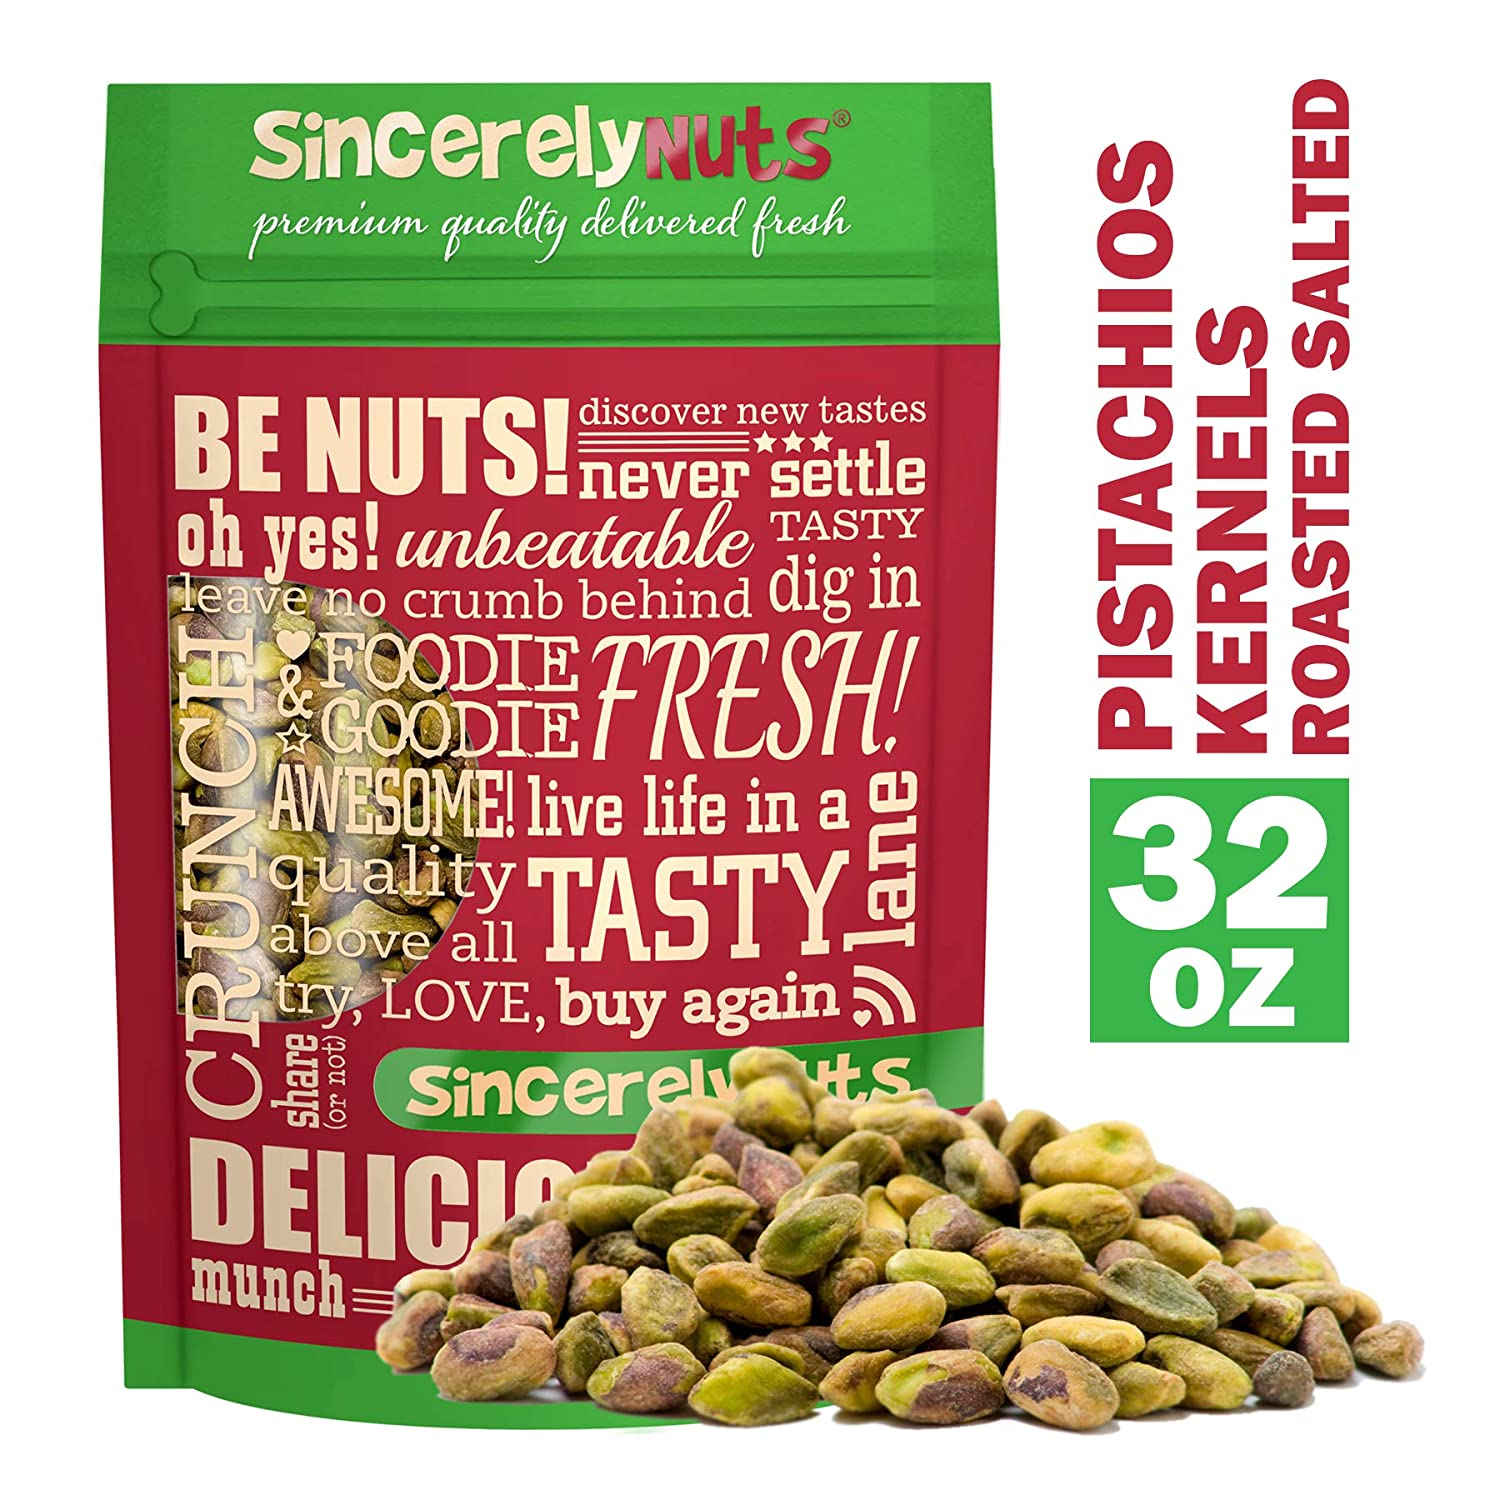 Sincerely Nuts Pistachios Roasted and Salted Kernels (Meats) No Shell - 2 Lb. Bag - | Healthy Snack Food | Great for Cooking | Source of Fiber & Protein | Gourmet Flavor | Vegan, Kosher & Gluten Free